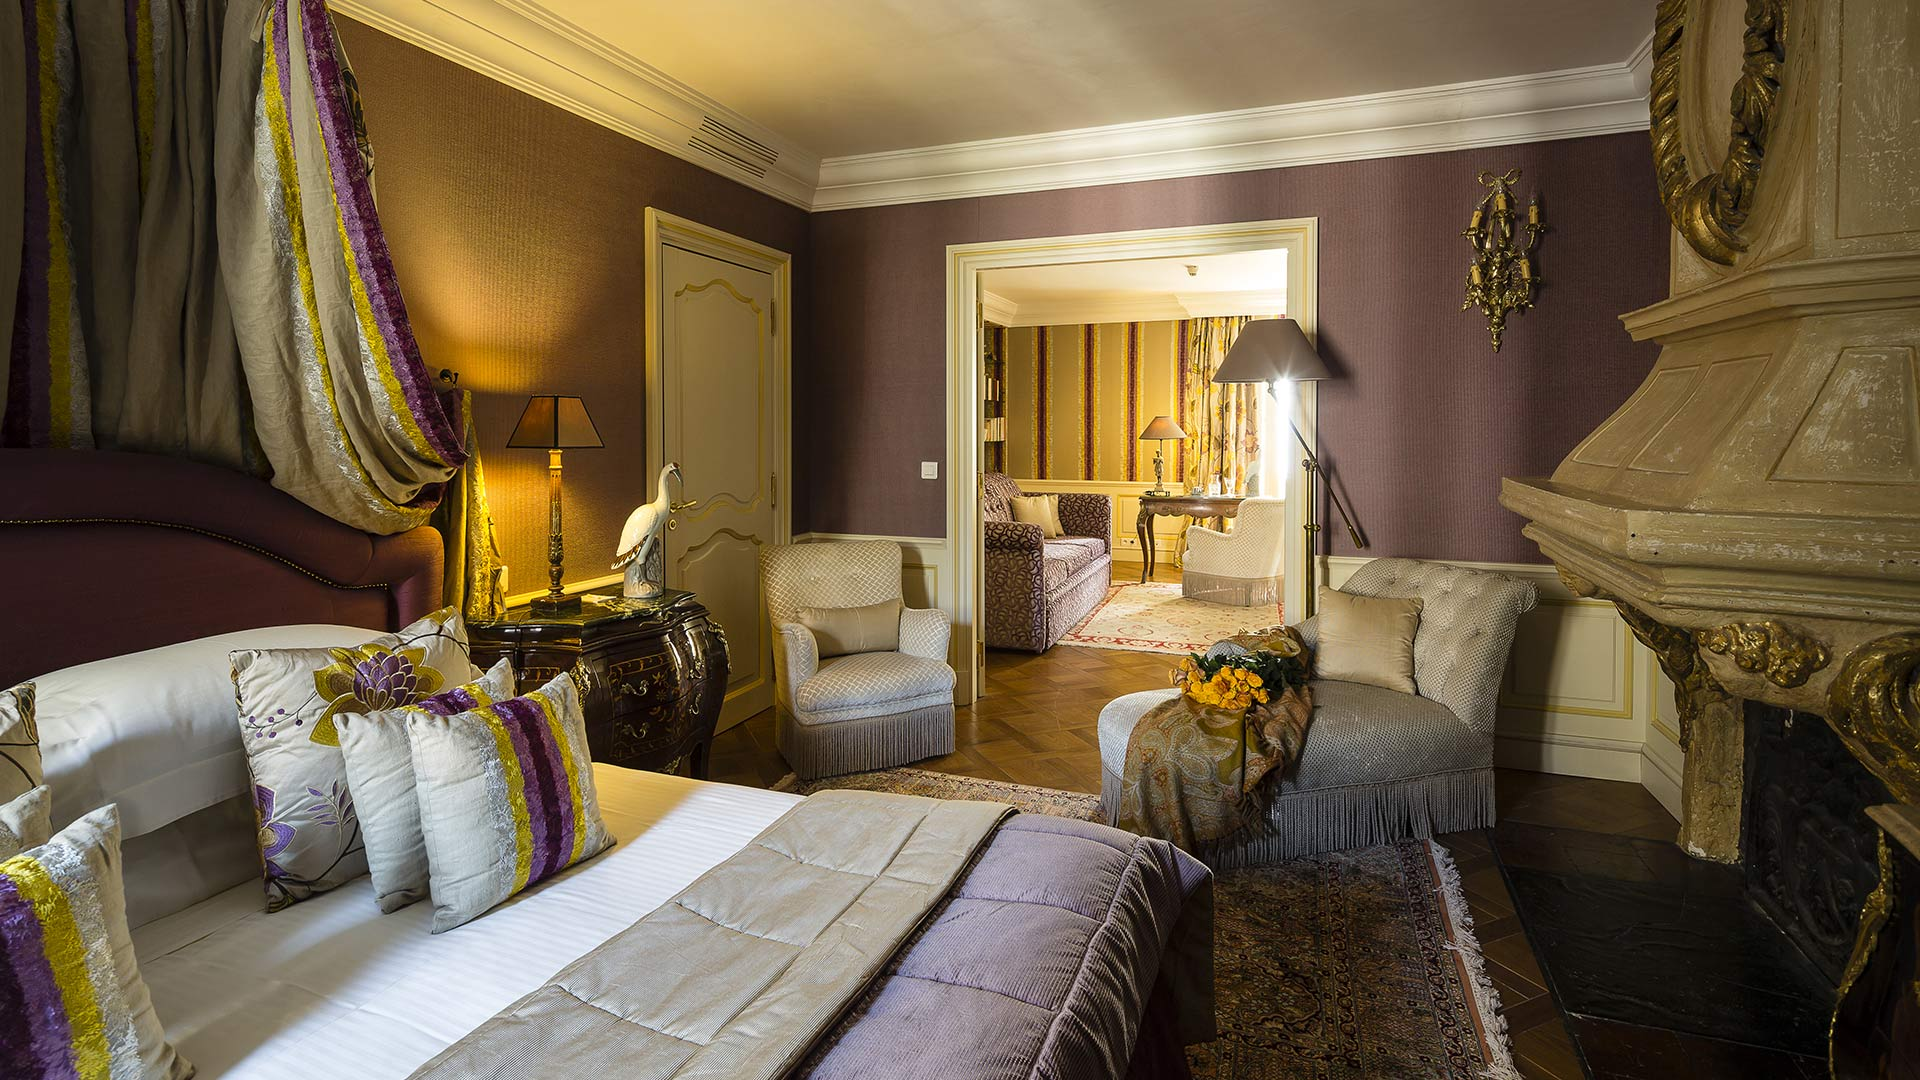 Suite Hotel Le Saint Paul Provenza